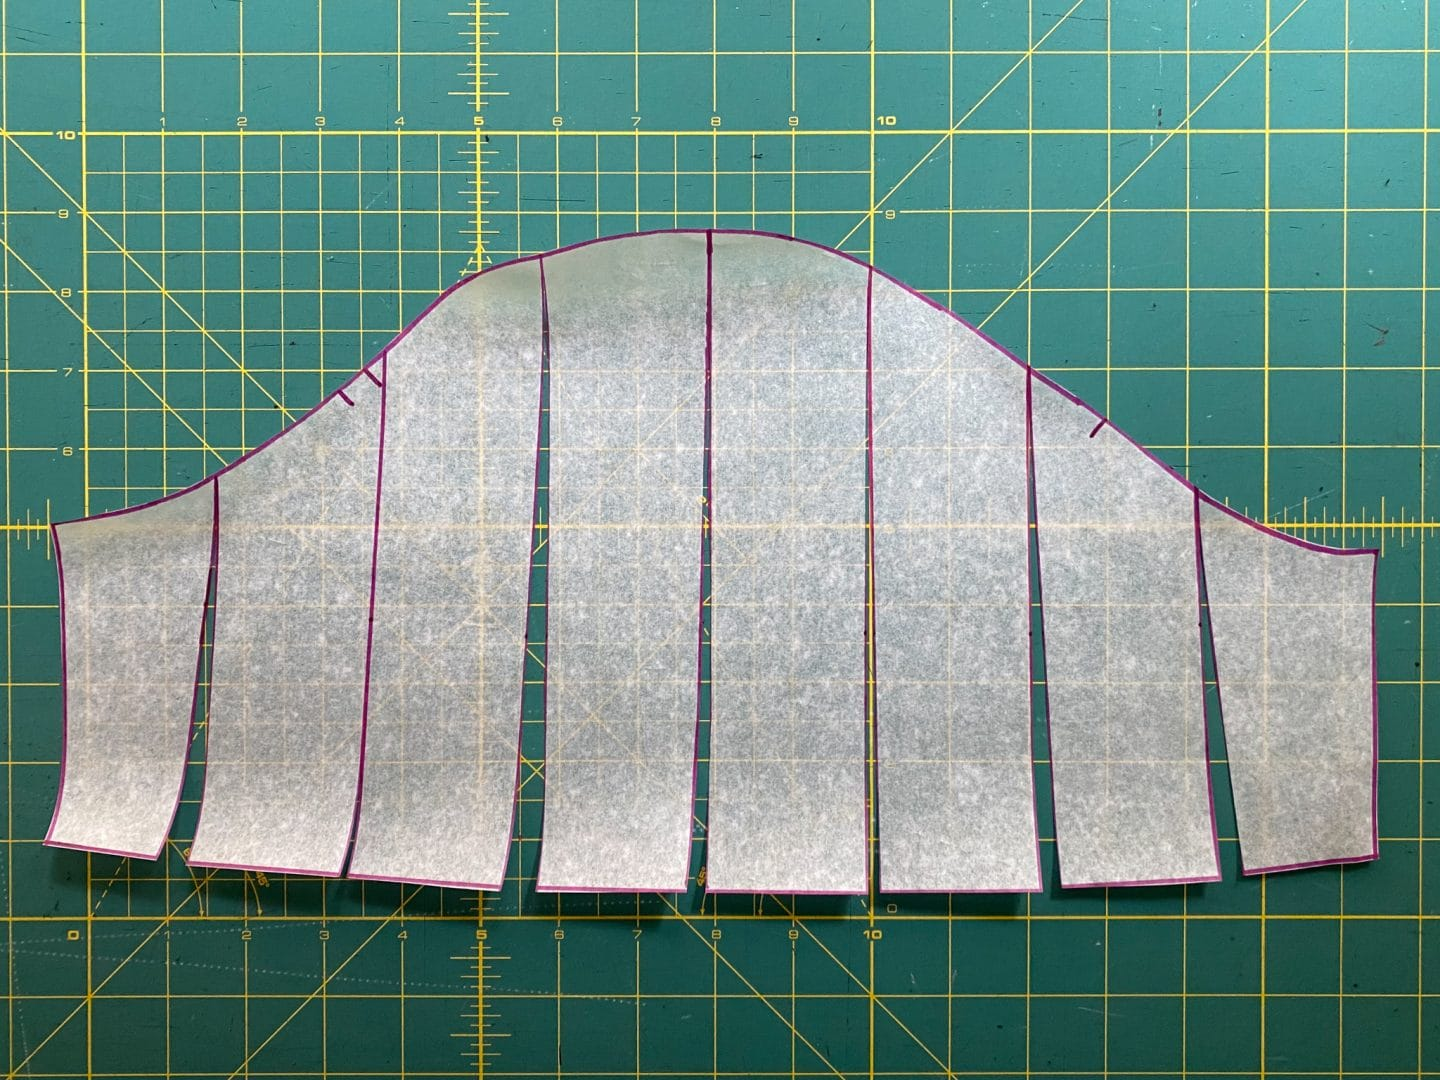 Image of the sleeve pattern showing the pink lines parallel to the grain line cut into the pattern.